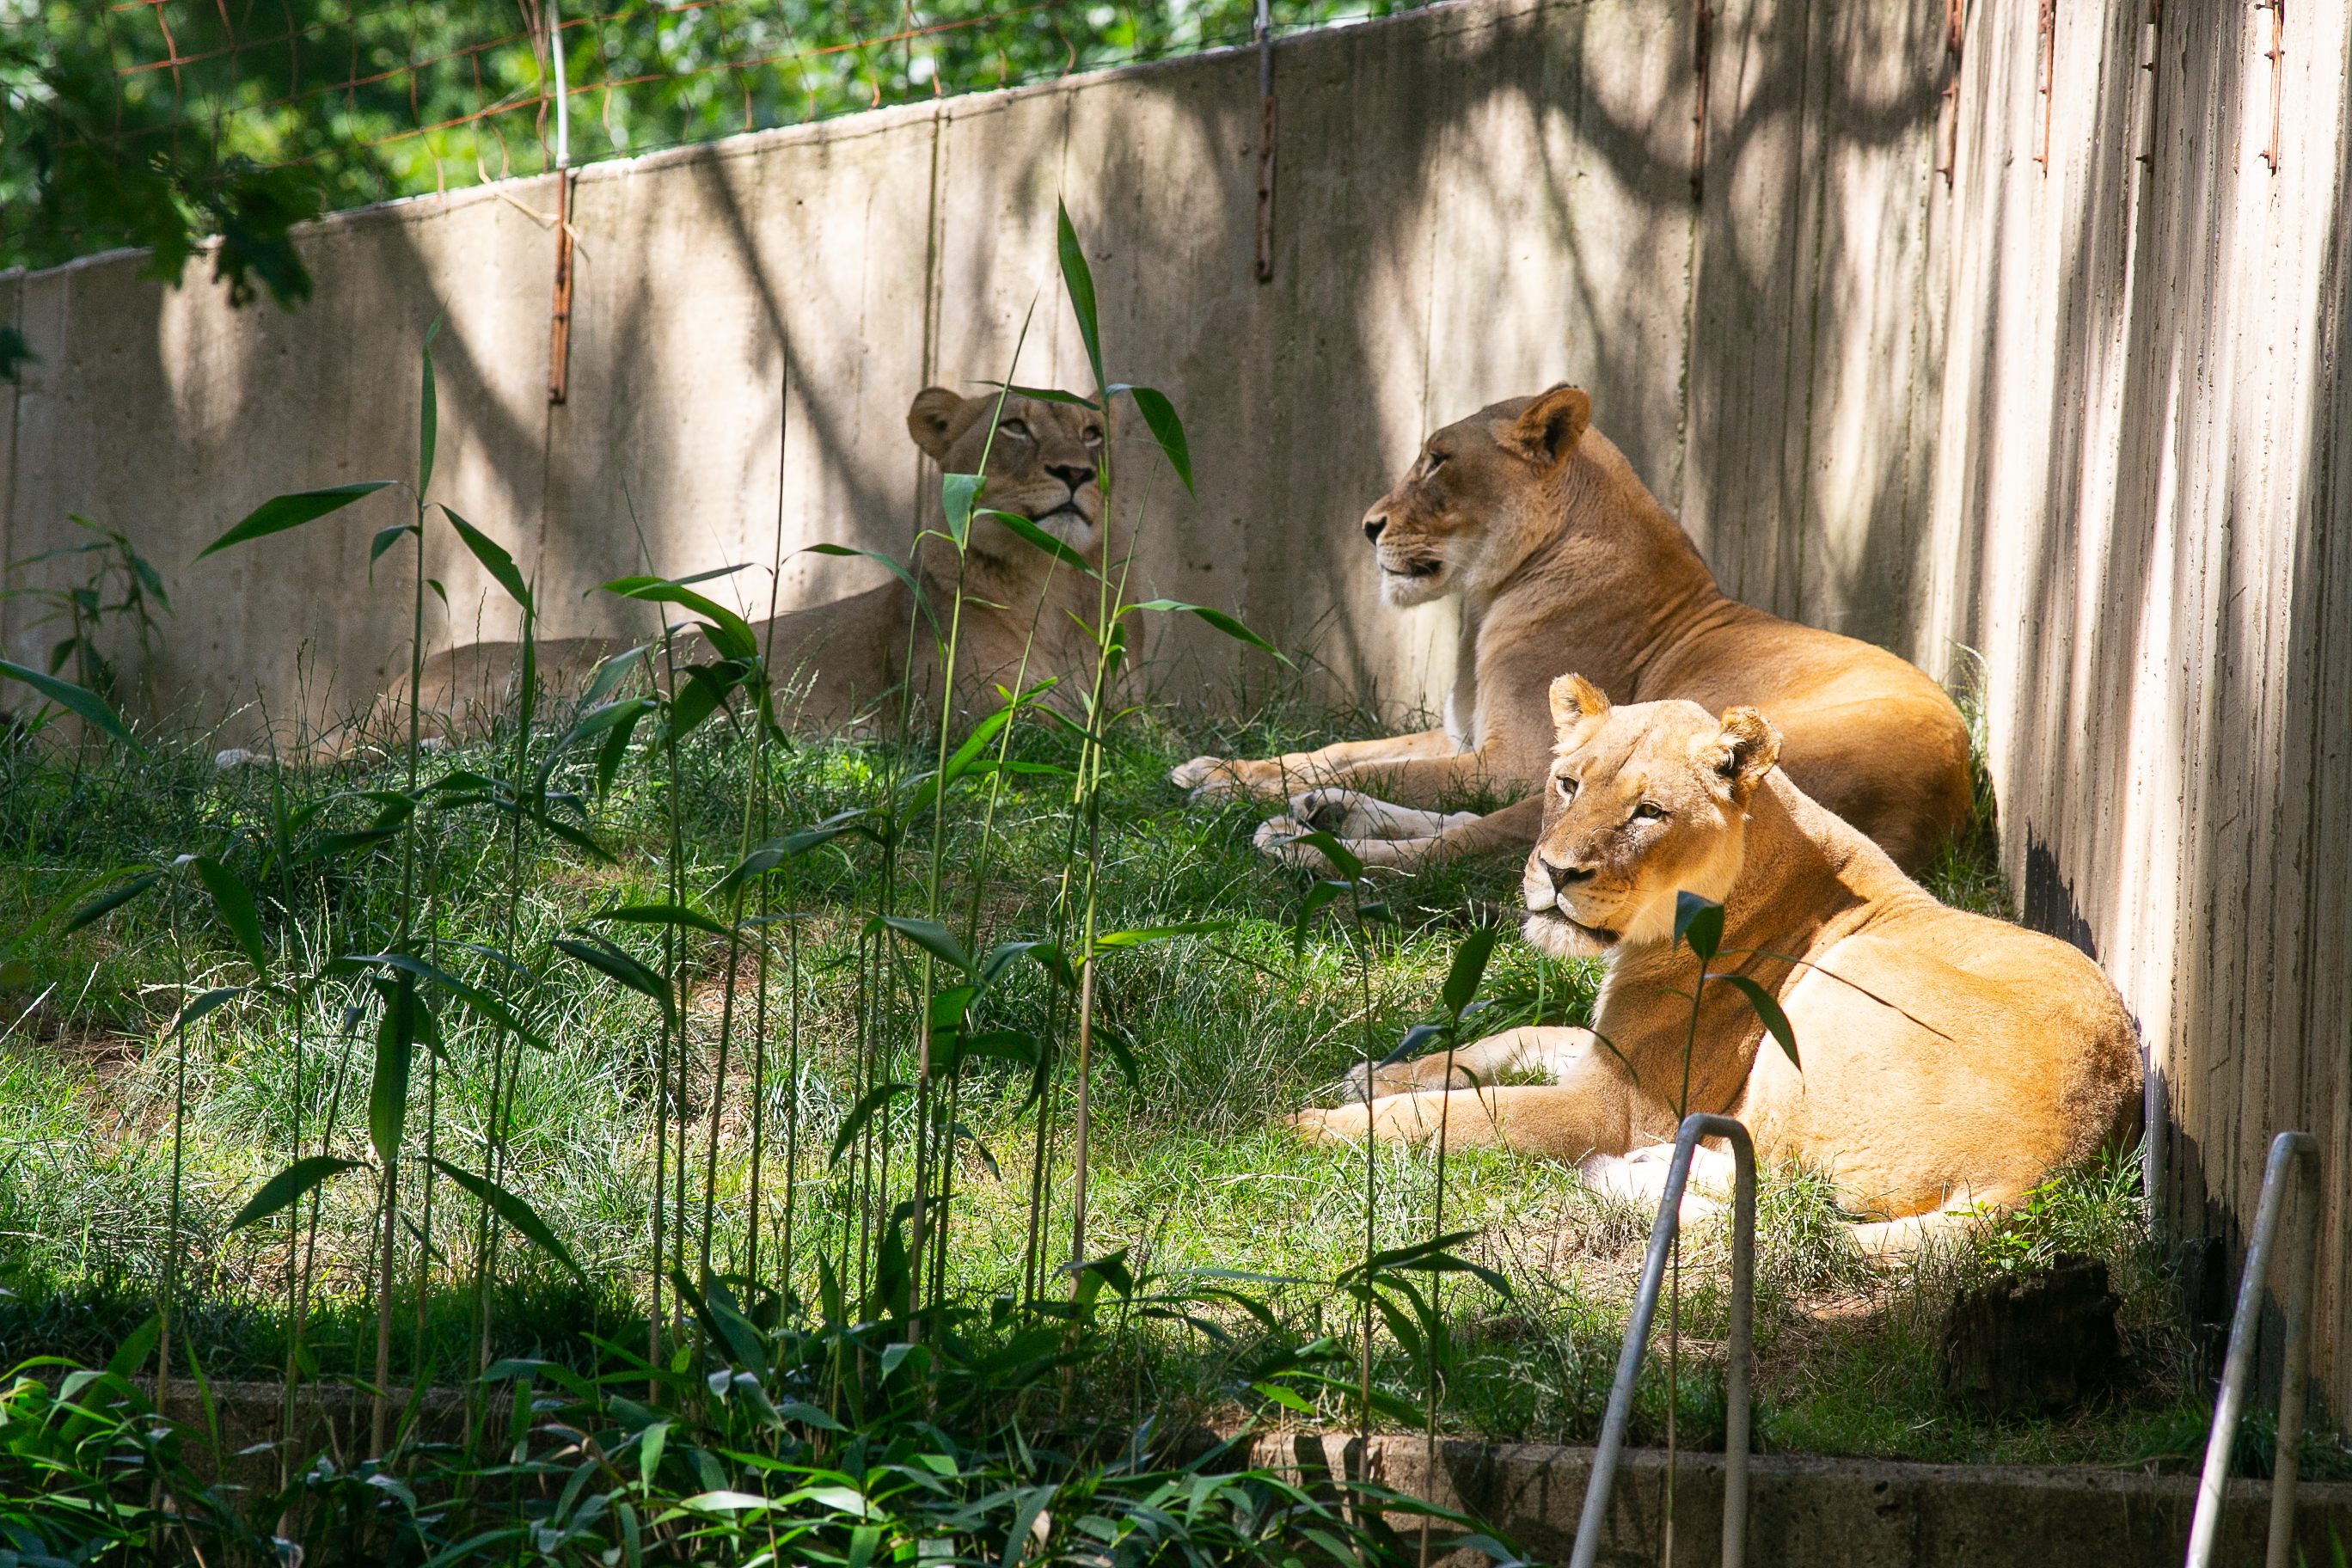 Three lions lounge in enclosure